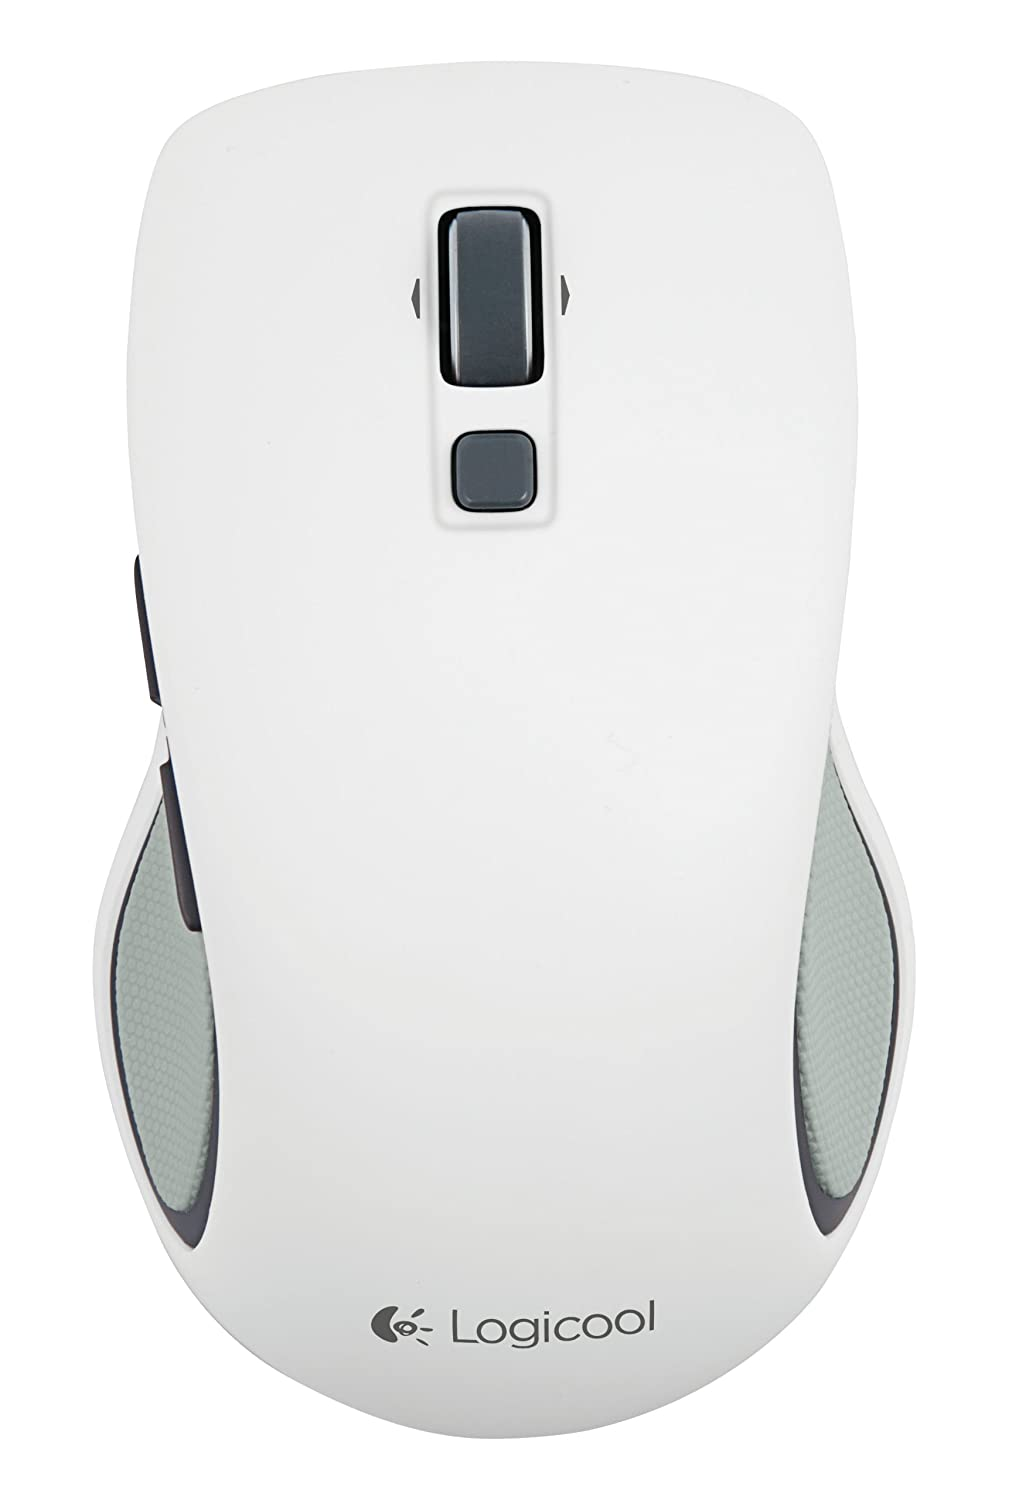 Logicool Wireless Mouse M560 M560WH